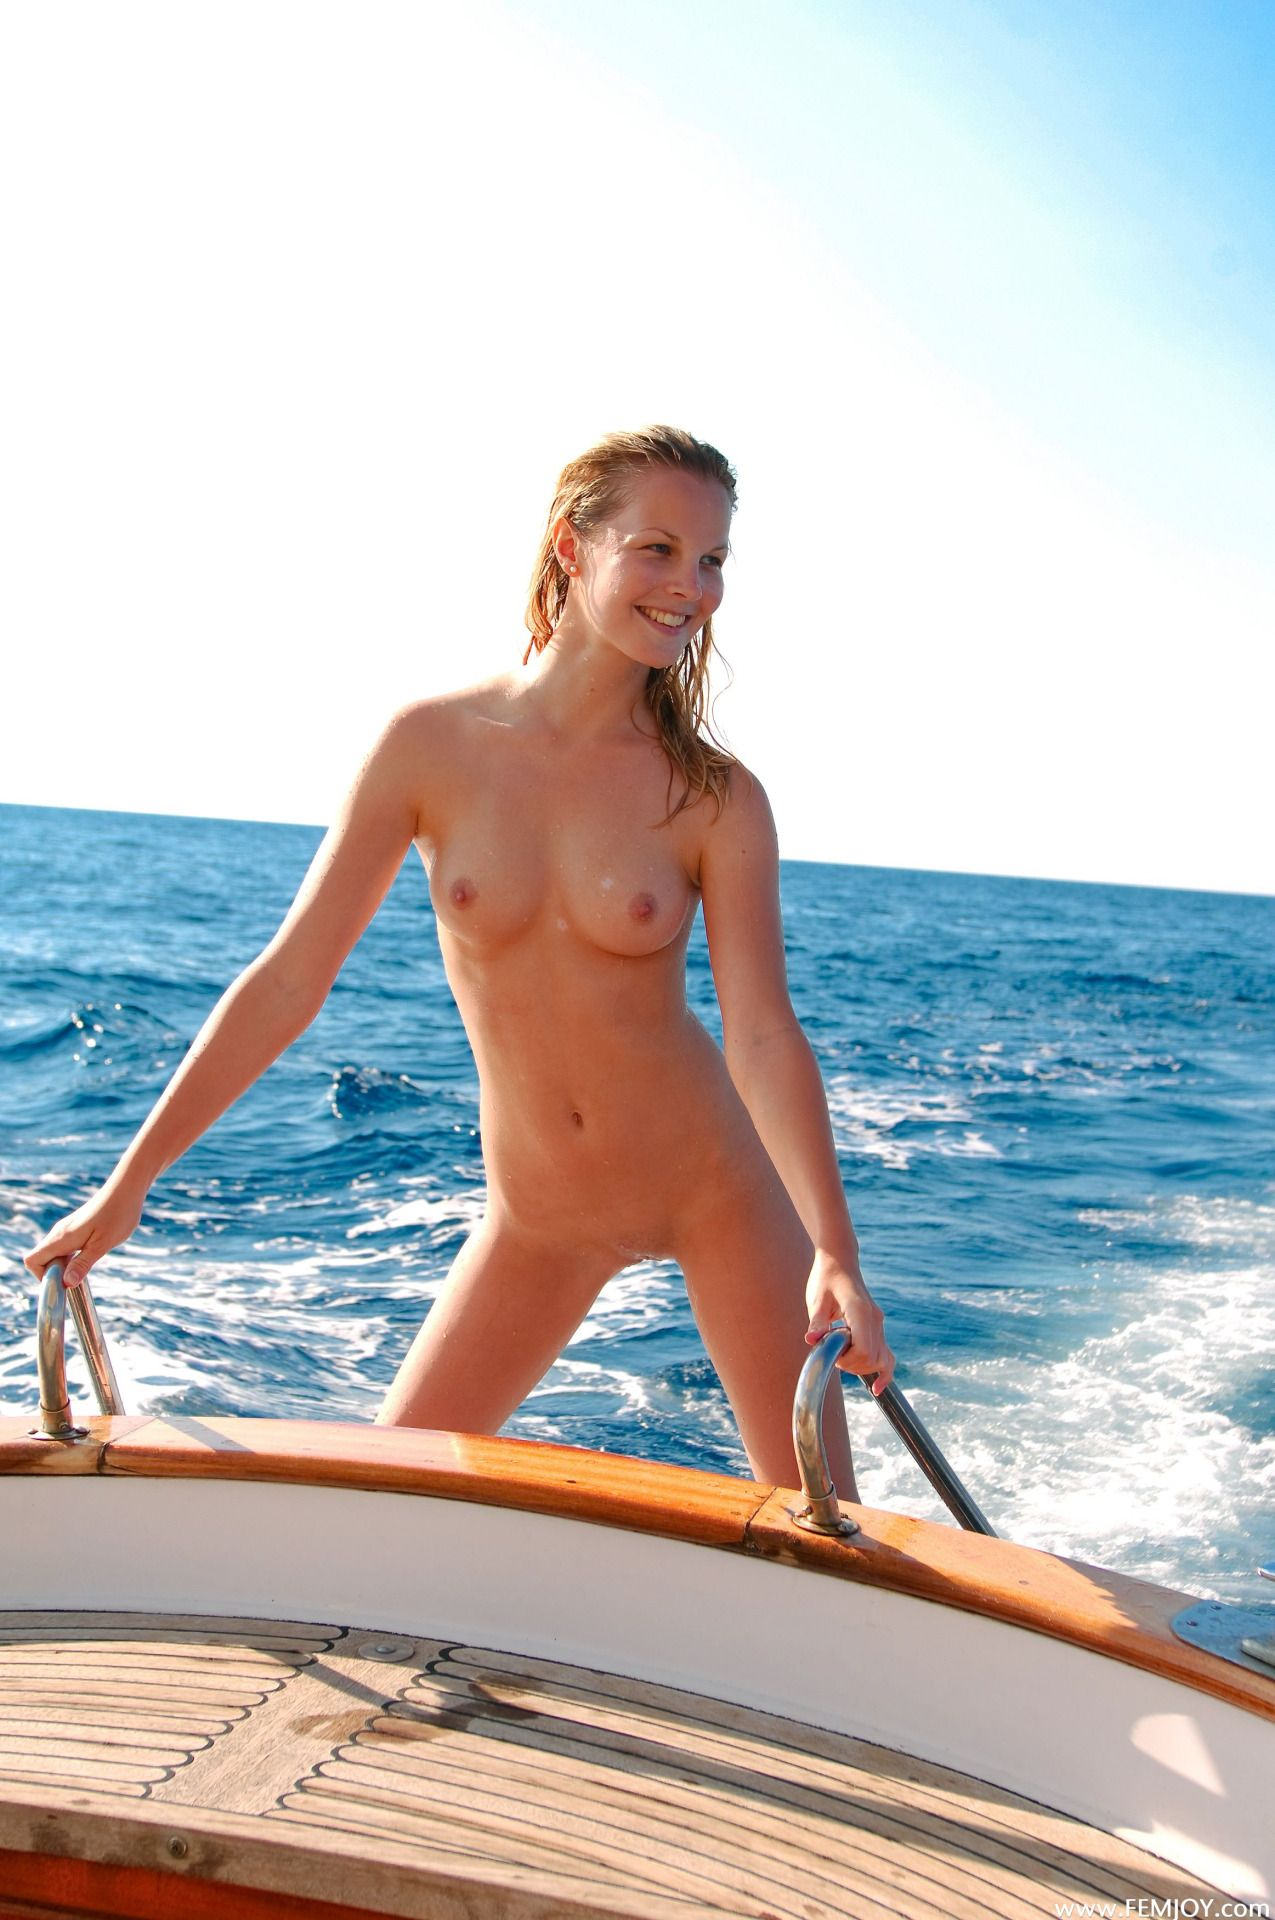 women in nudist boat